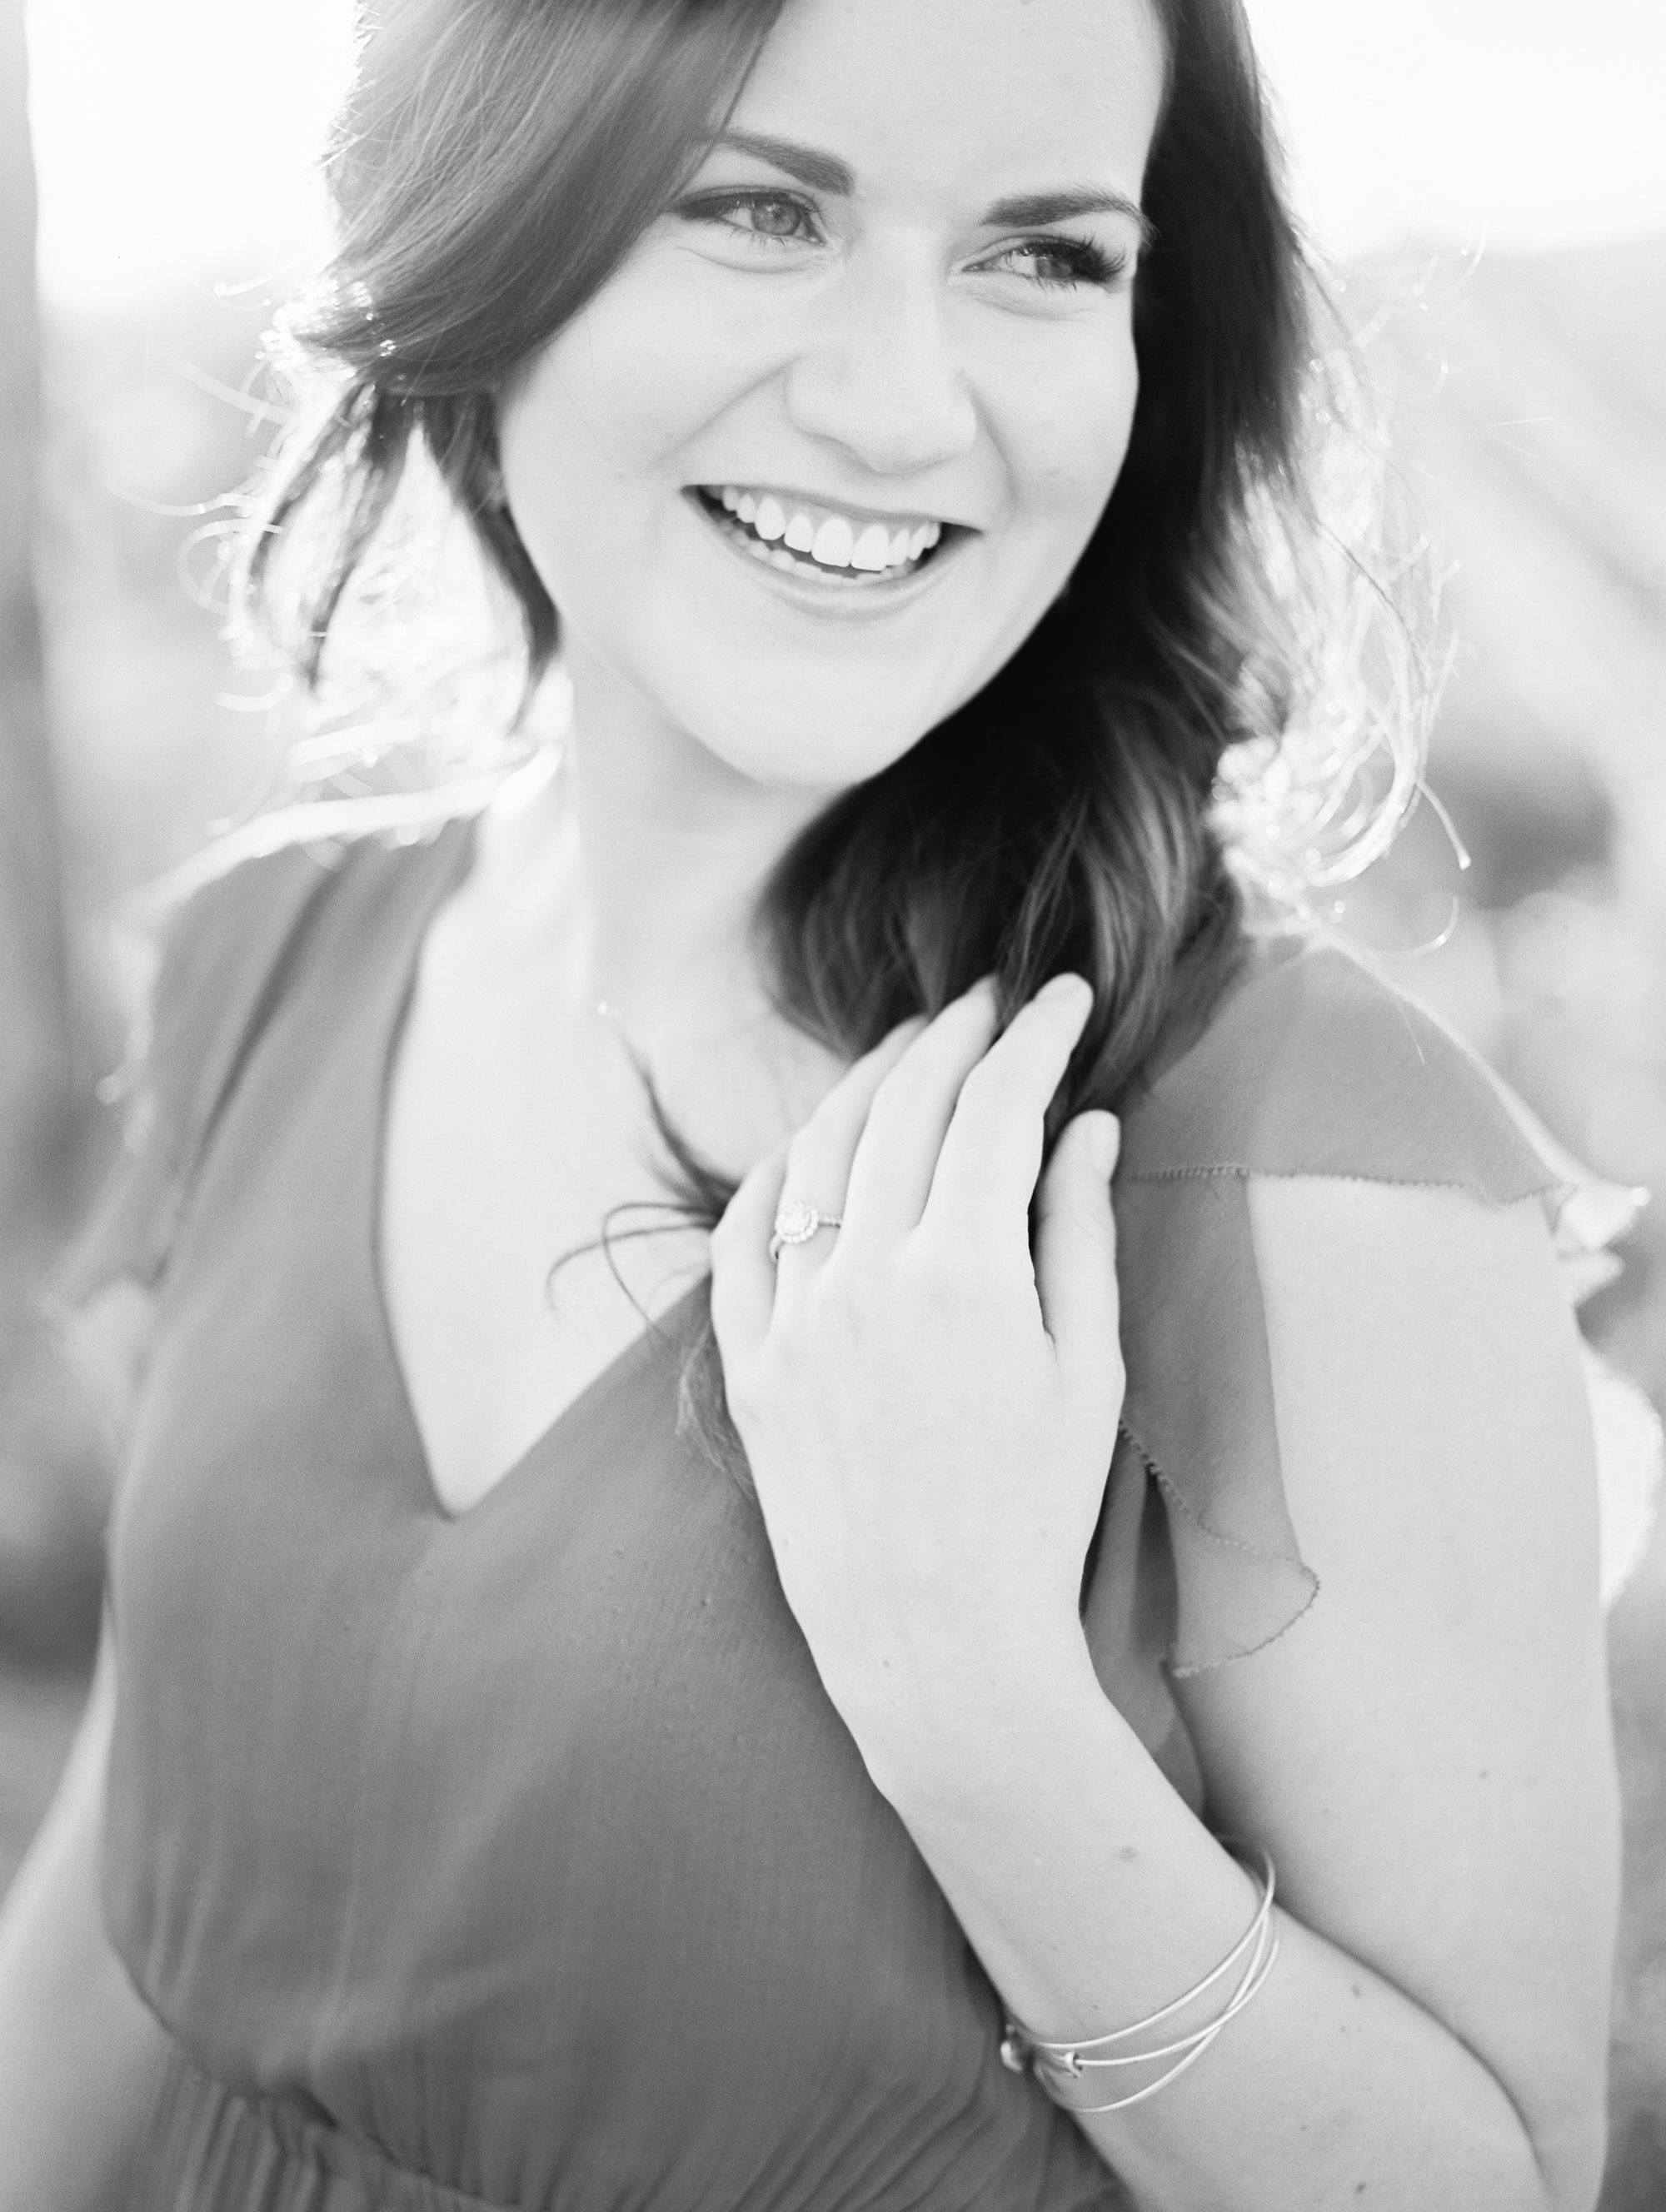 Gorgeous black and white portrait of this smiling bride to be